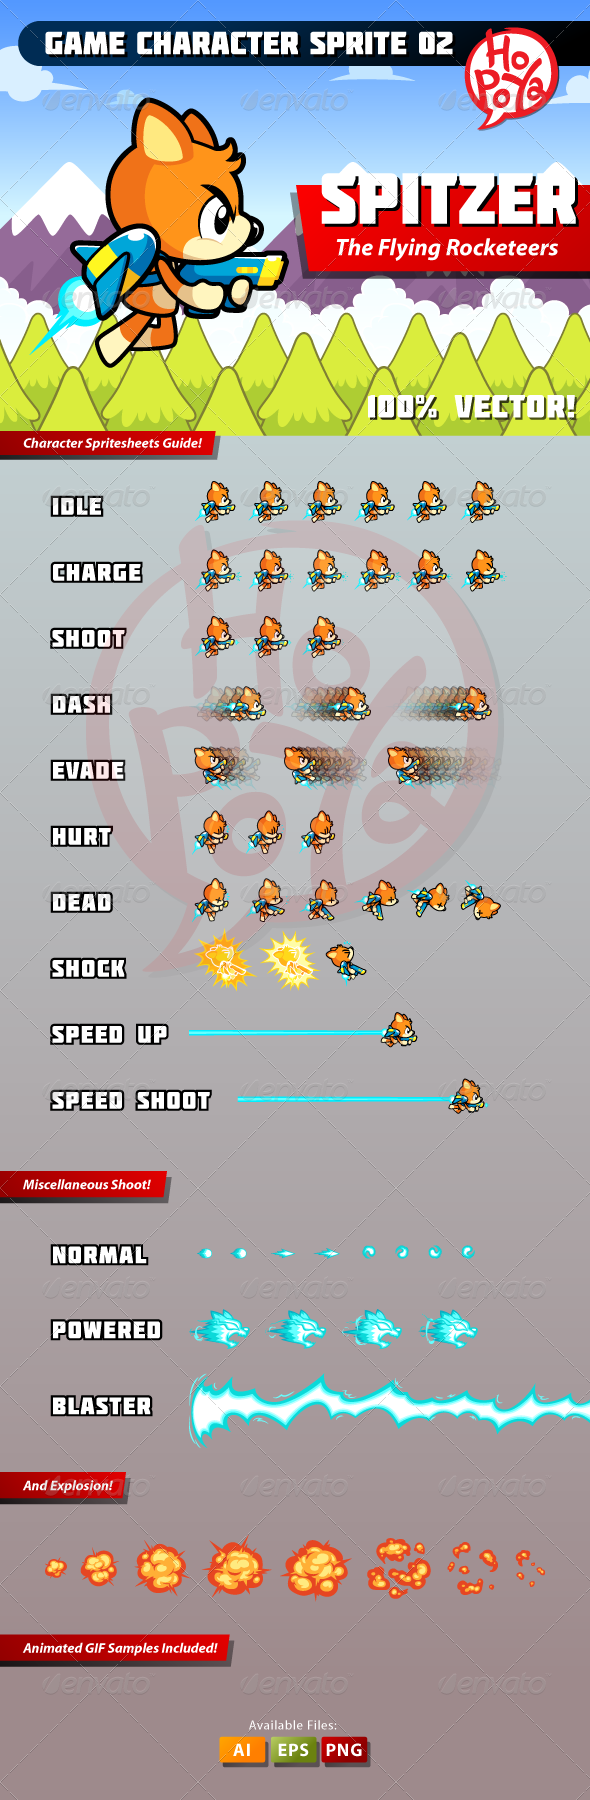 Game Character Sprite 02 - Animals Characters